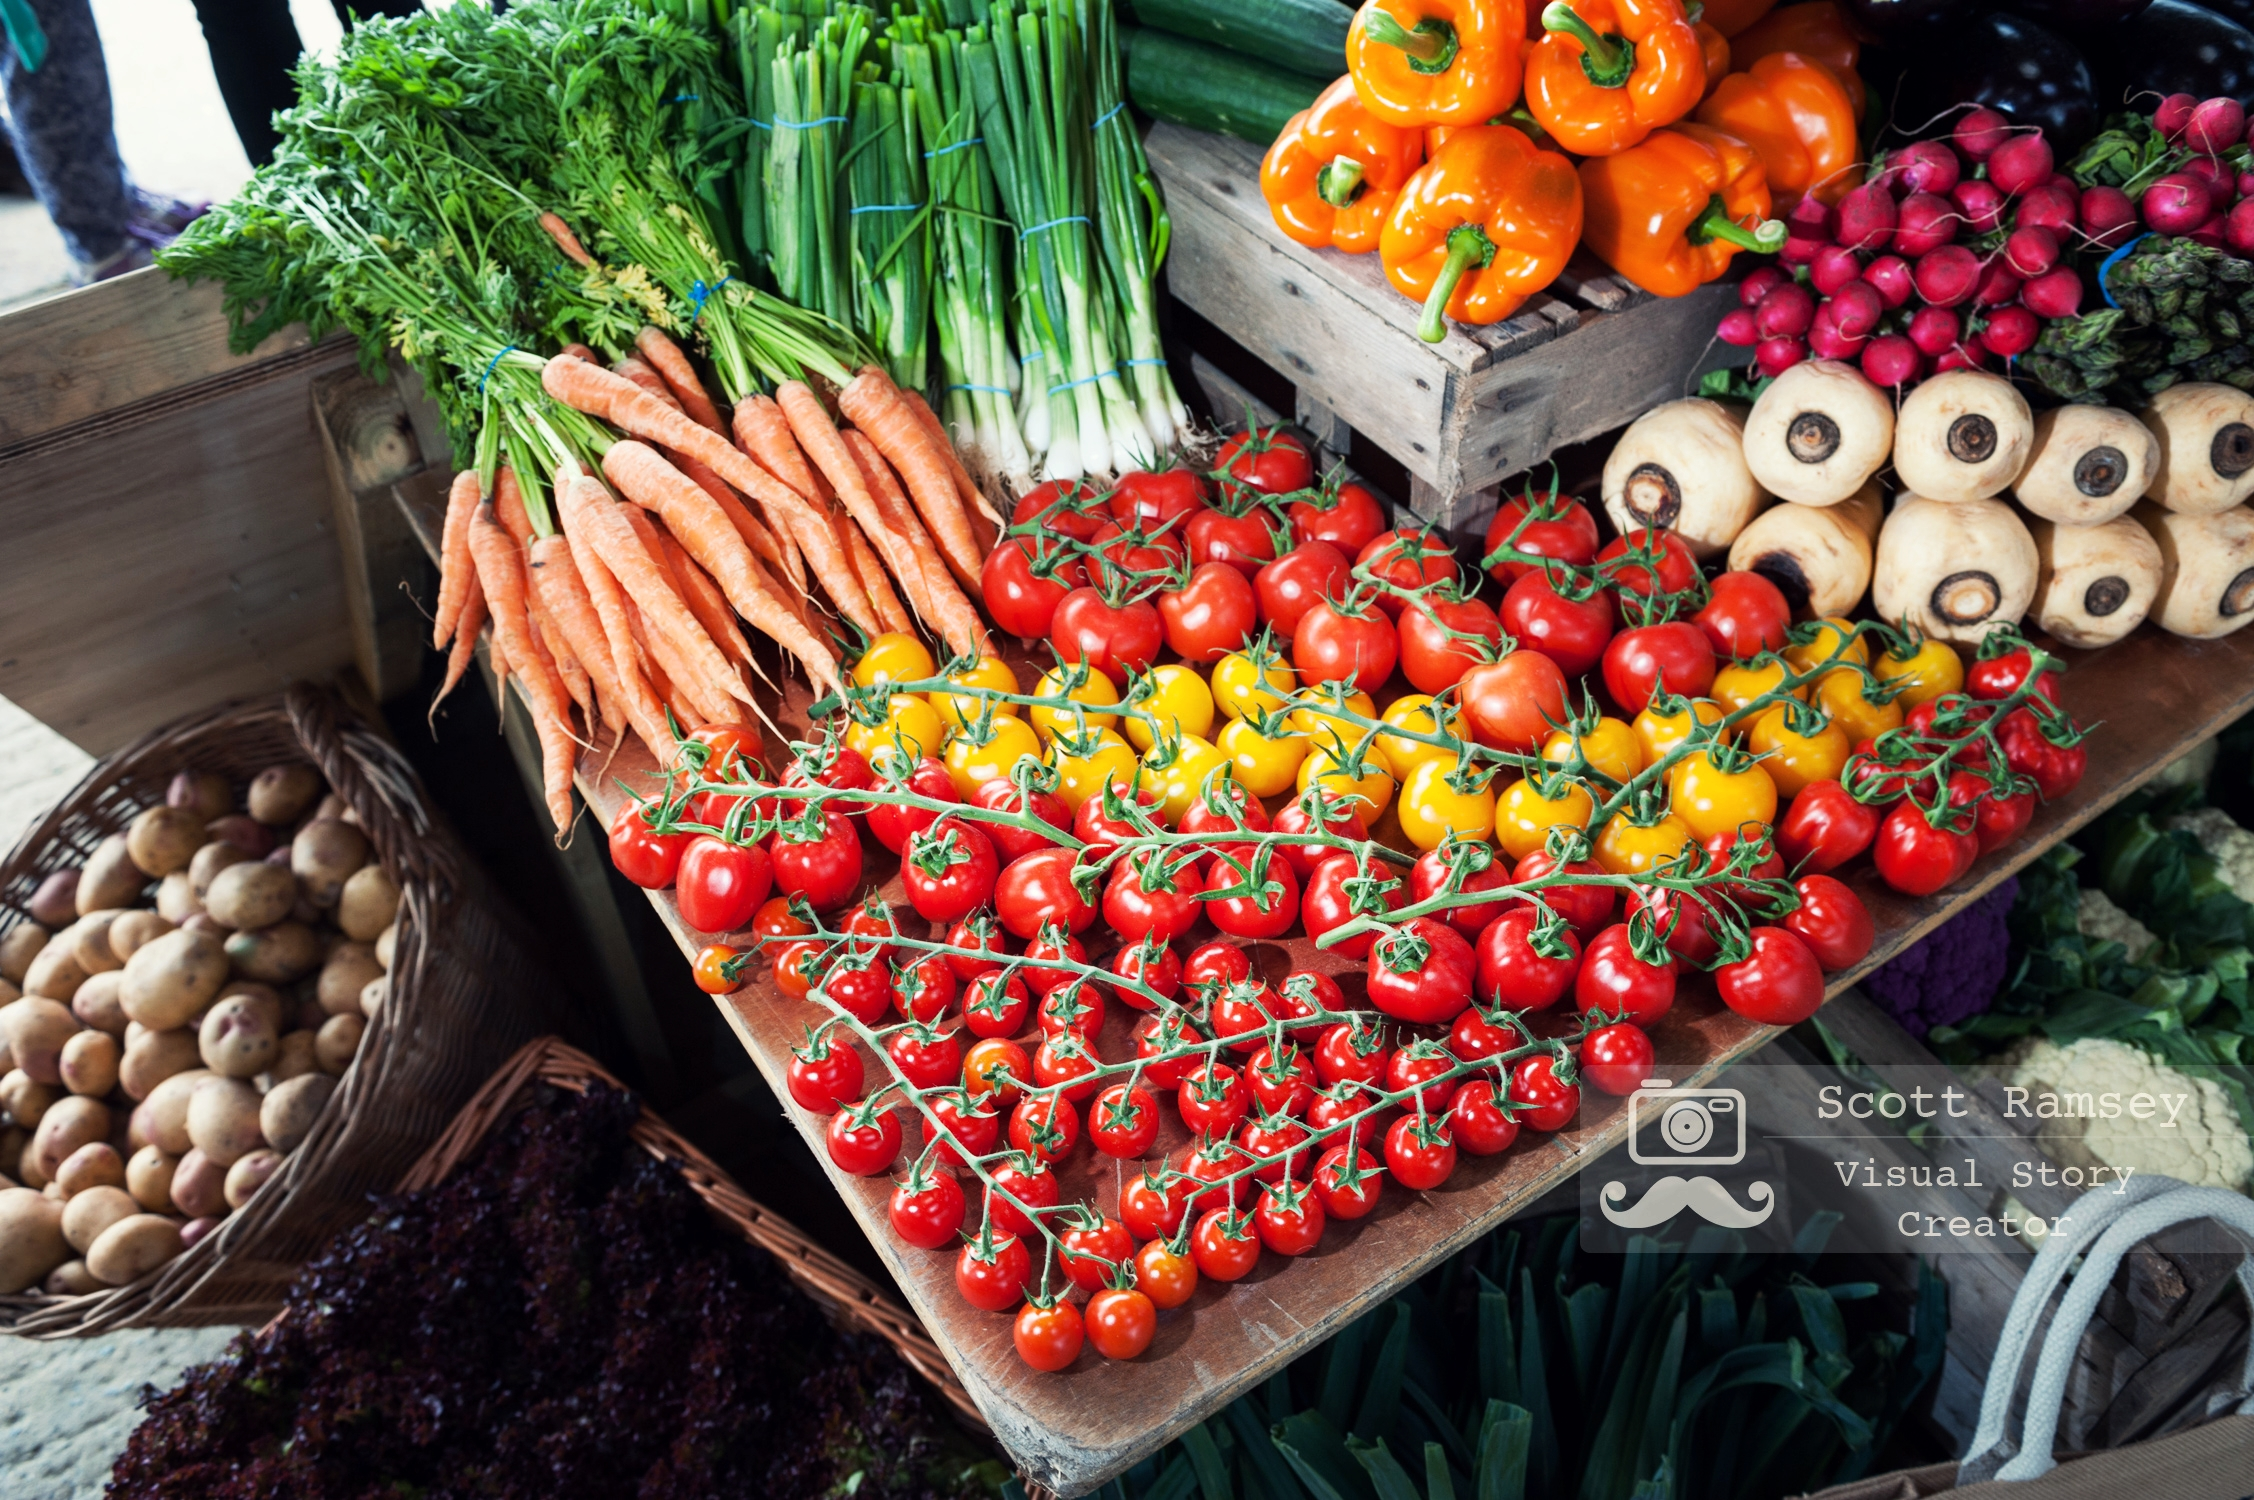 Tomatoes, carrots and other fresh produce from Sussex farms on display at the 2017 South Of England Show. Photo © Scott Ramsey